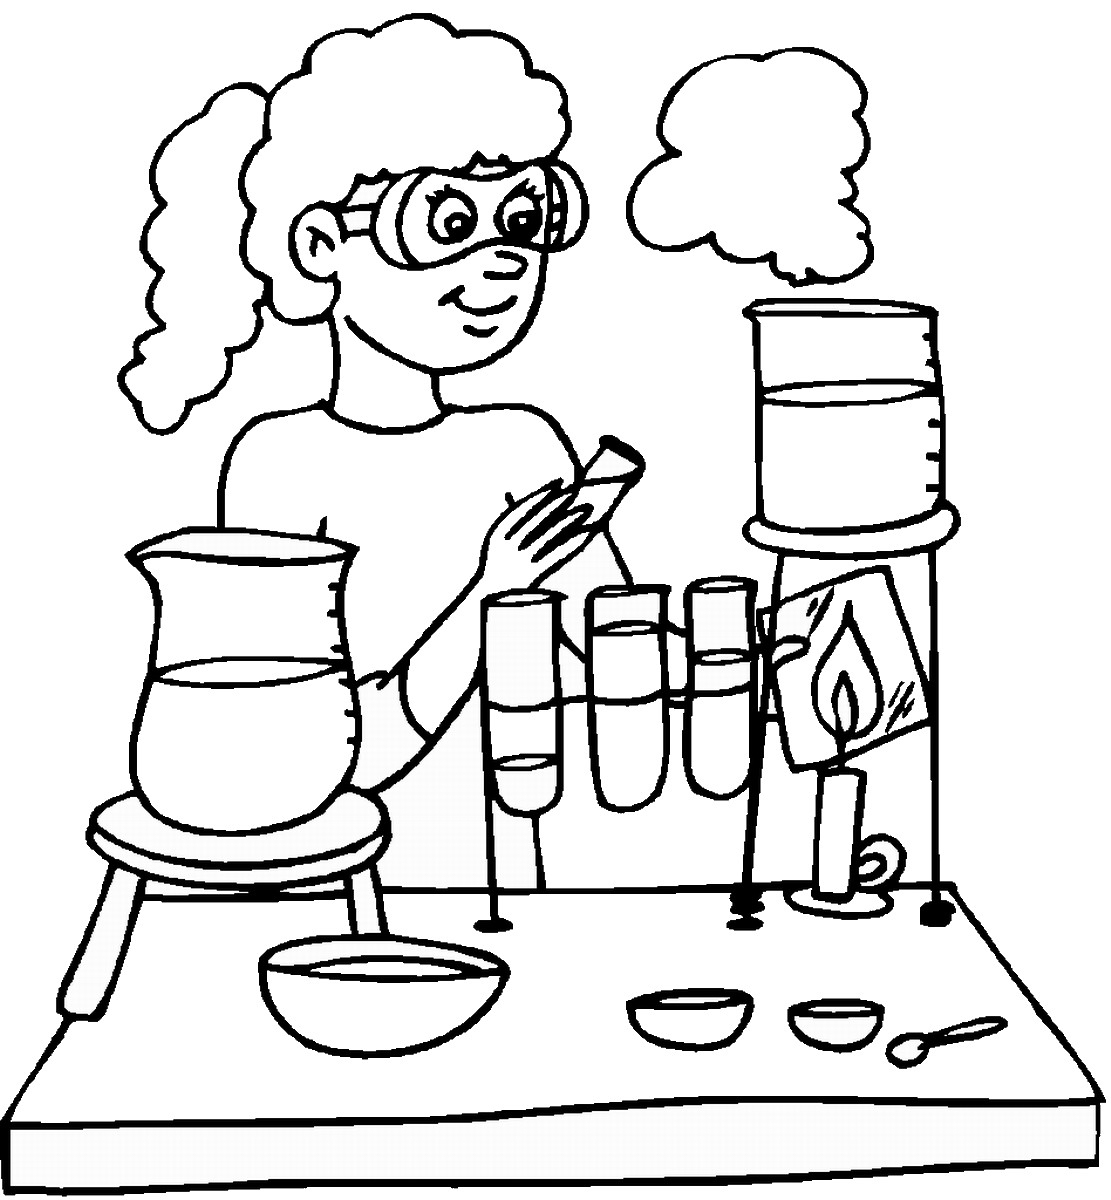 Mad Scientist Coloring Pages  Collection 6i - Free Download